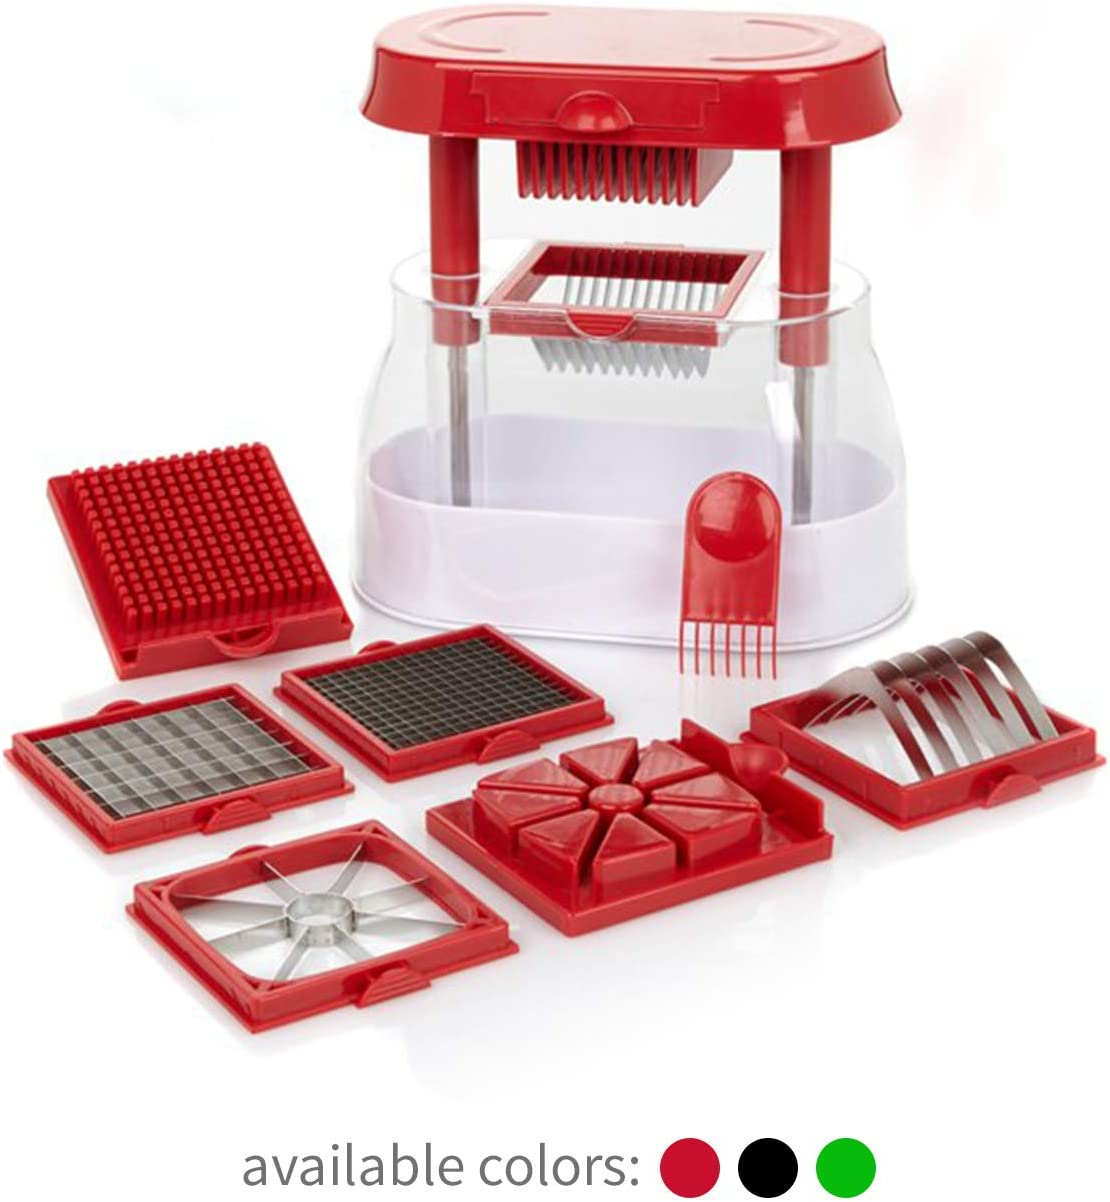 Ronco Veg-O-Matic Deluxe, Fruit and Vegetable Chopper, Interchangeable Stainless-Steel Blades, Food Cutter, Catch Container, Dishwasher Safe (Red)